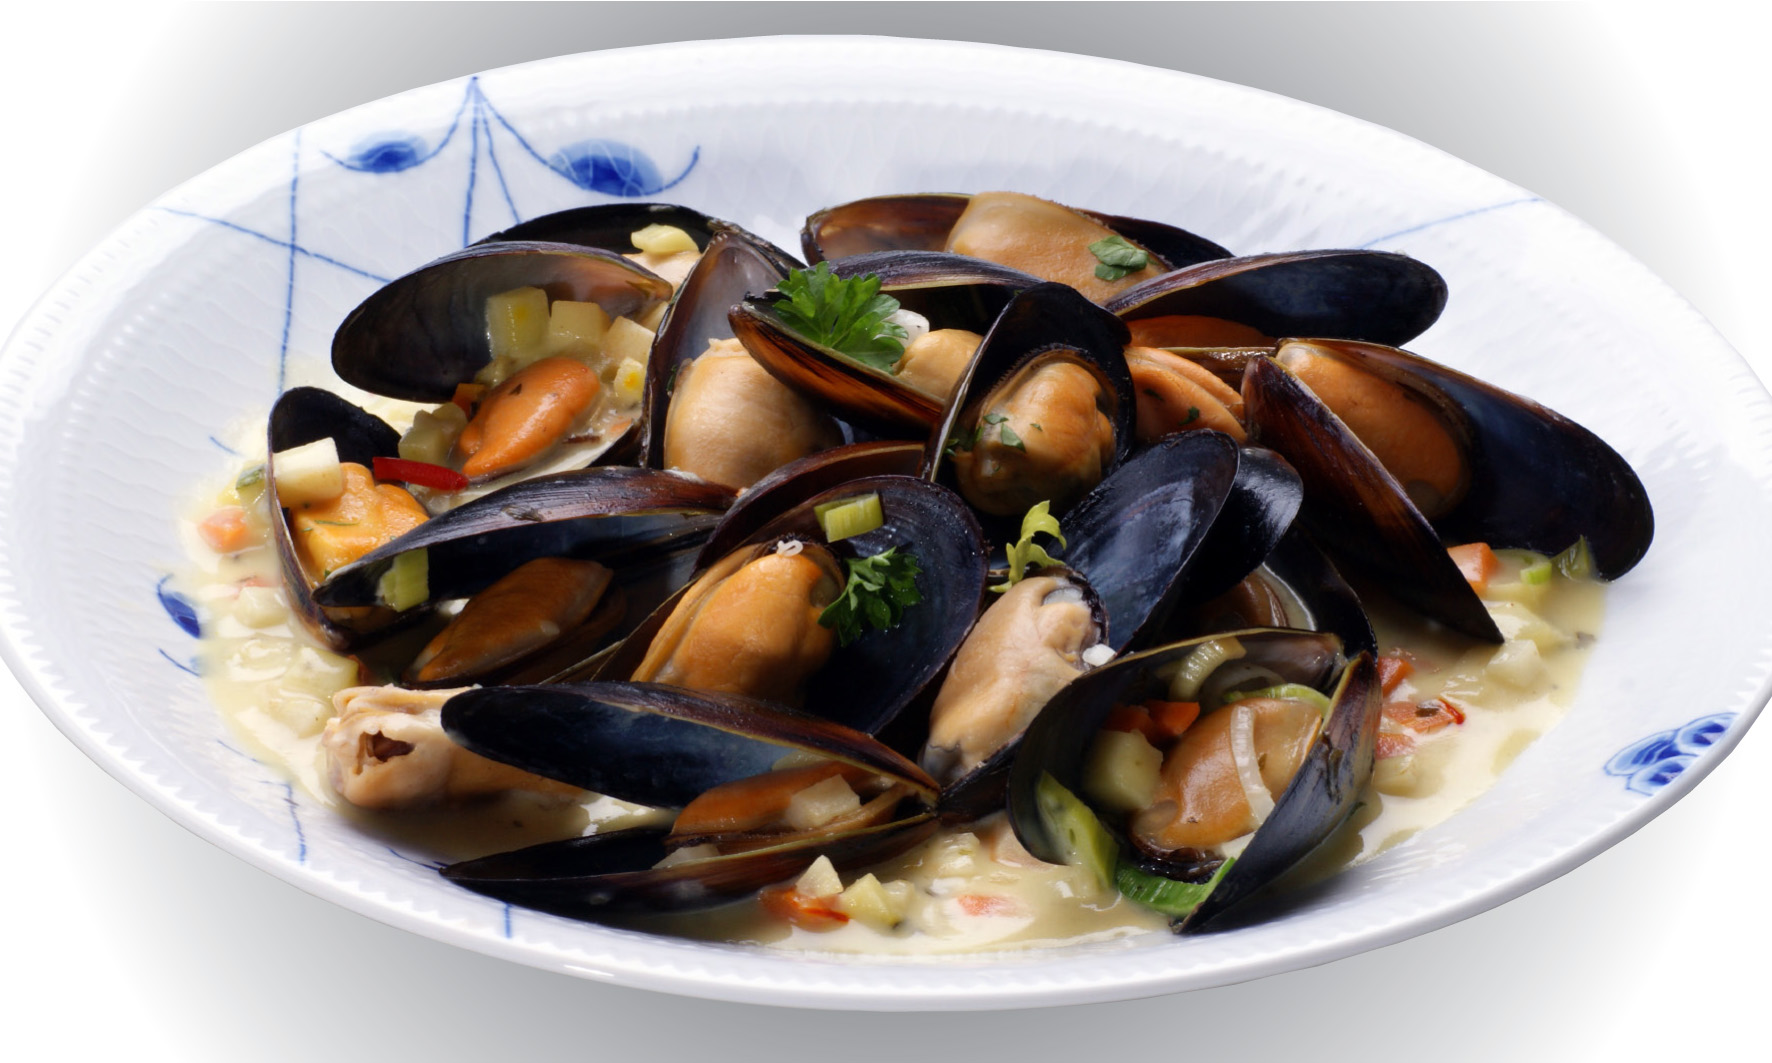 Mussels and Scallops - Recipes Mussels in cream of saffron